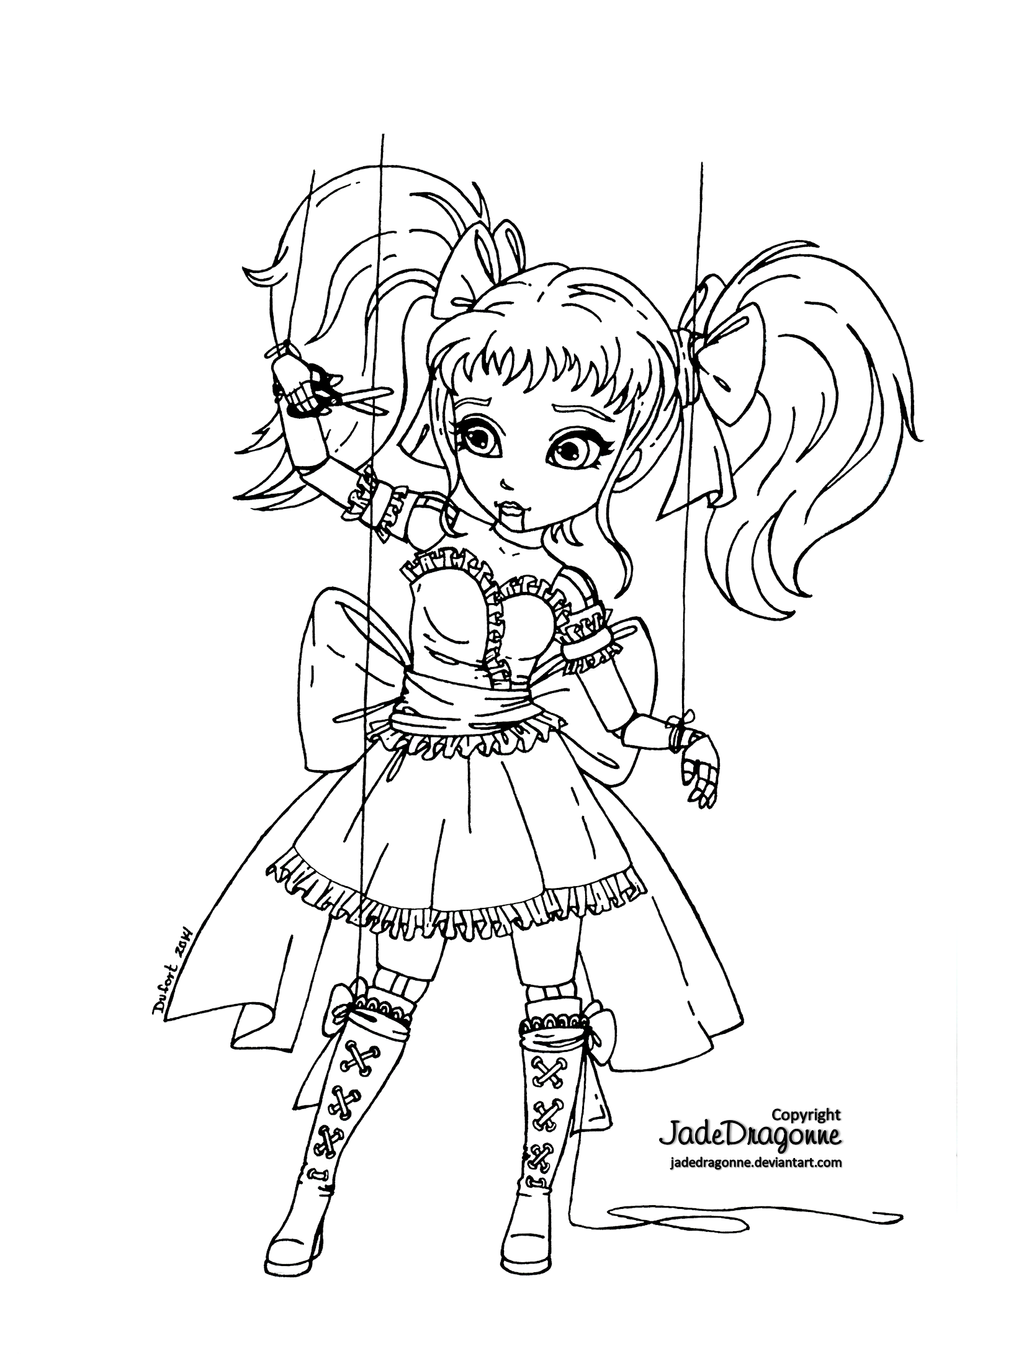 jadedragonne deviantart coloring pages - photo#3